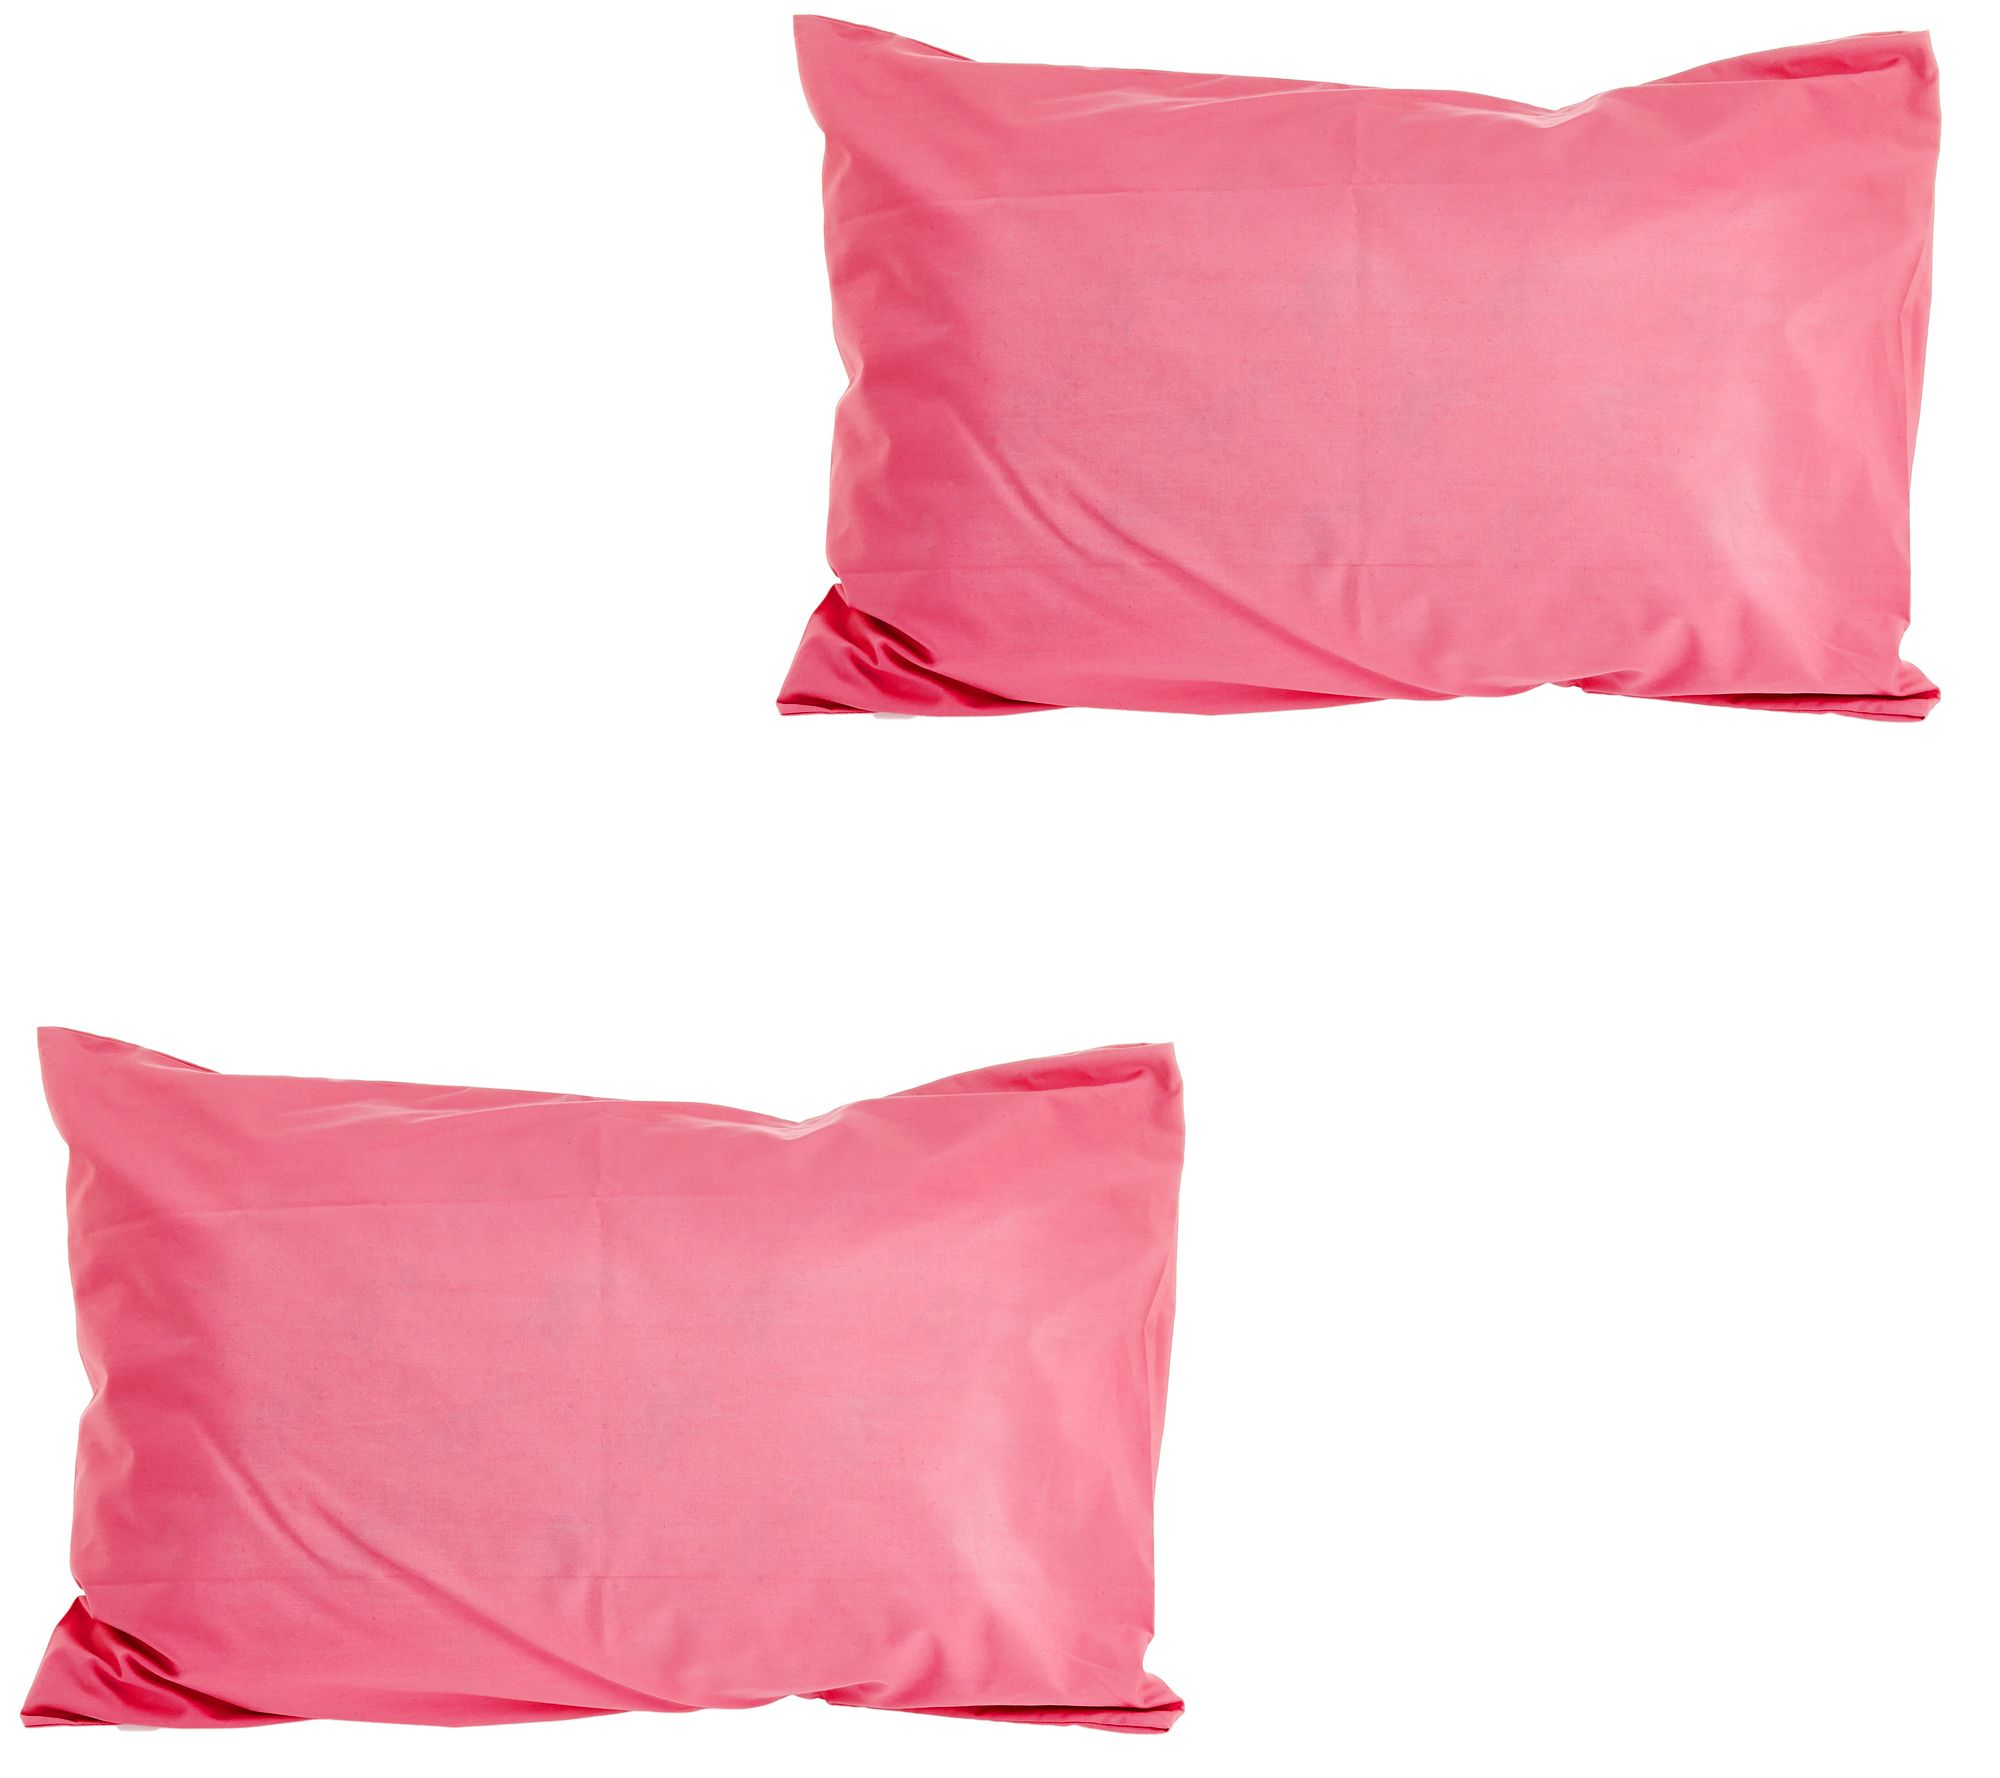 MyPillow Set of 2 Roll & Go Pillows - Page 1 — QVC.com